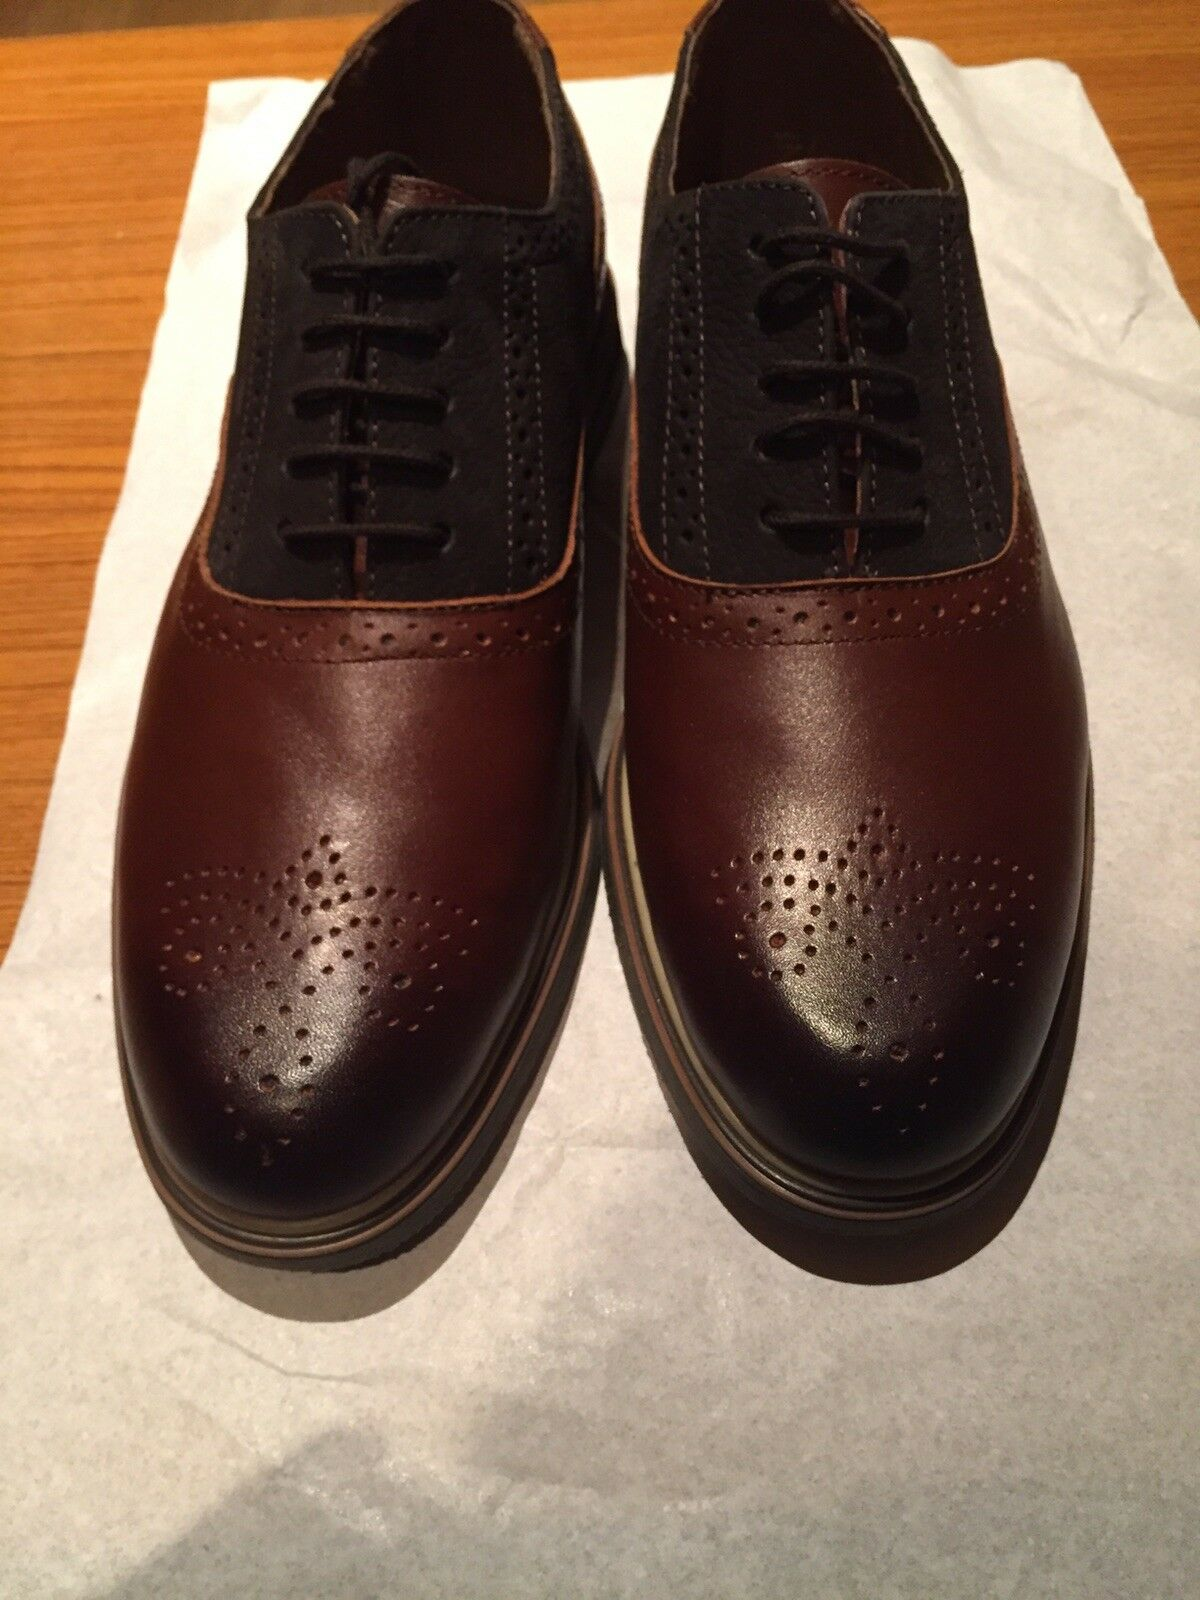 shoes 100% leather man size 7 8 9